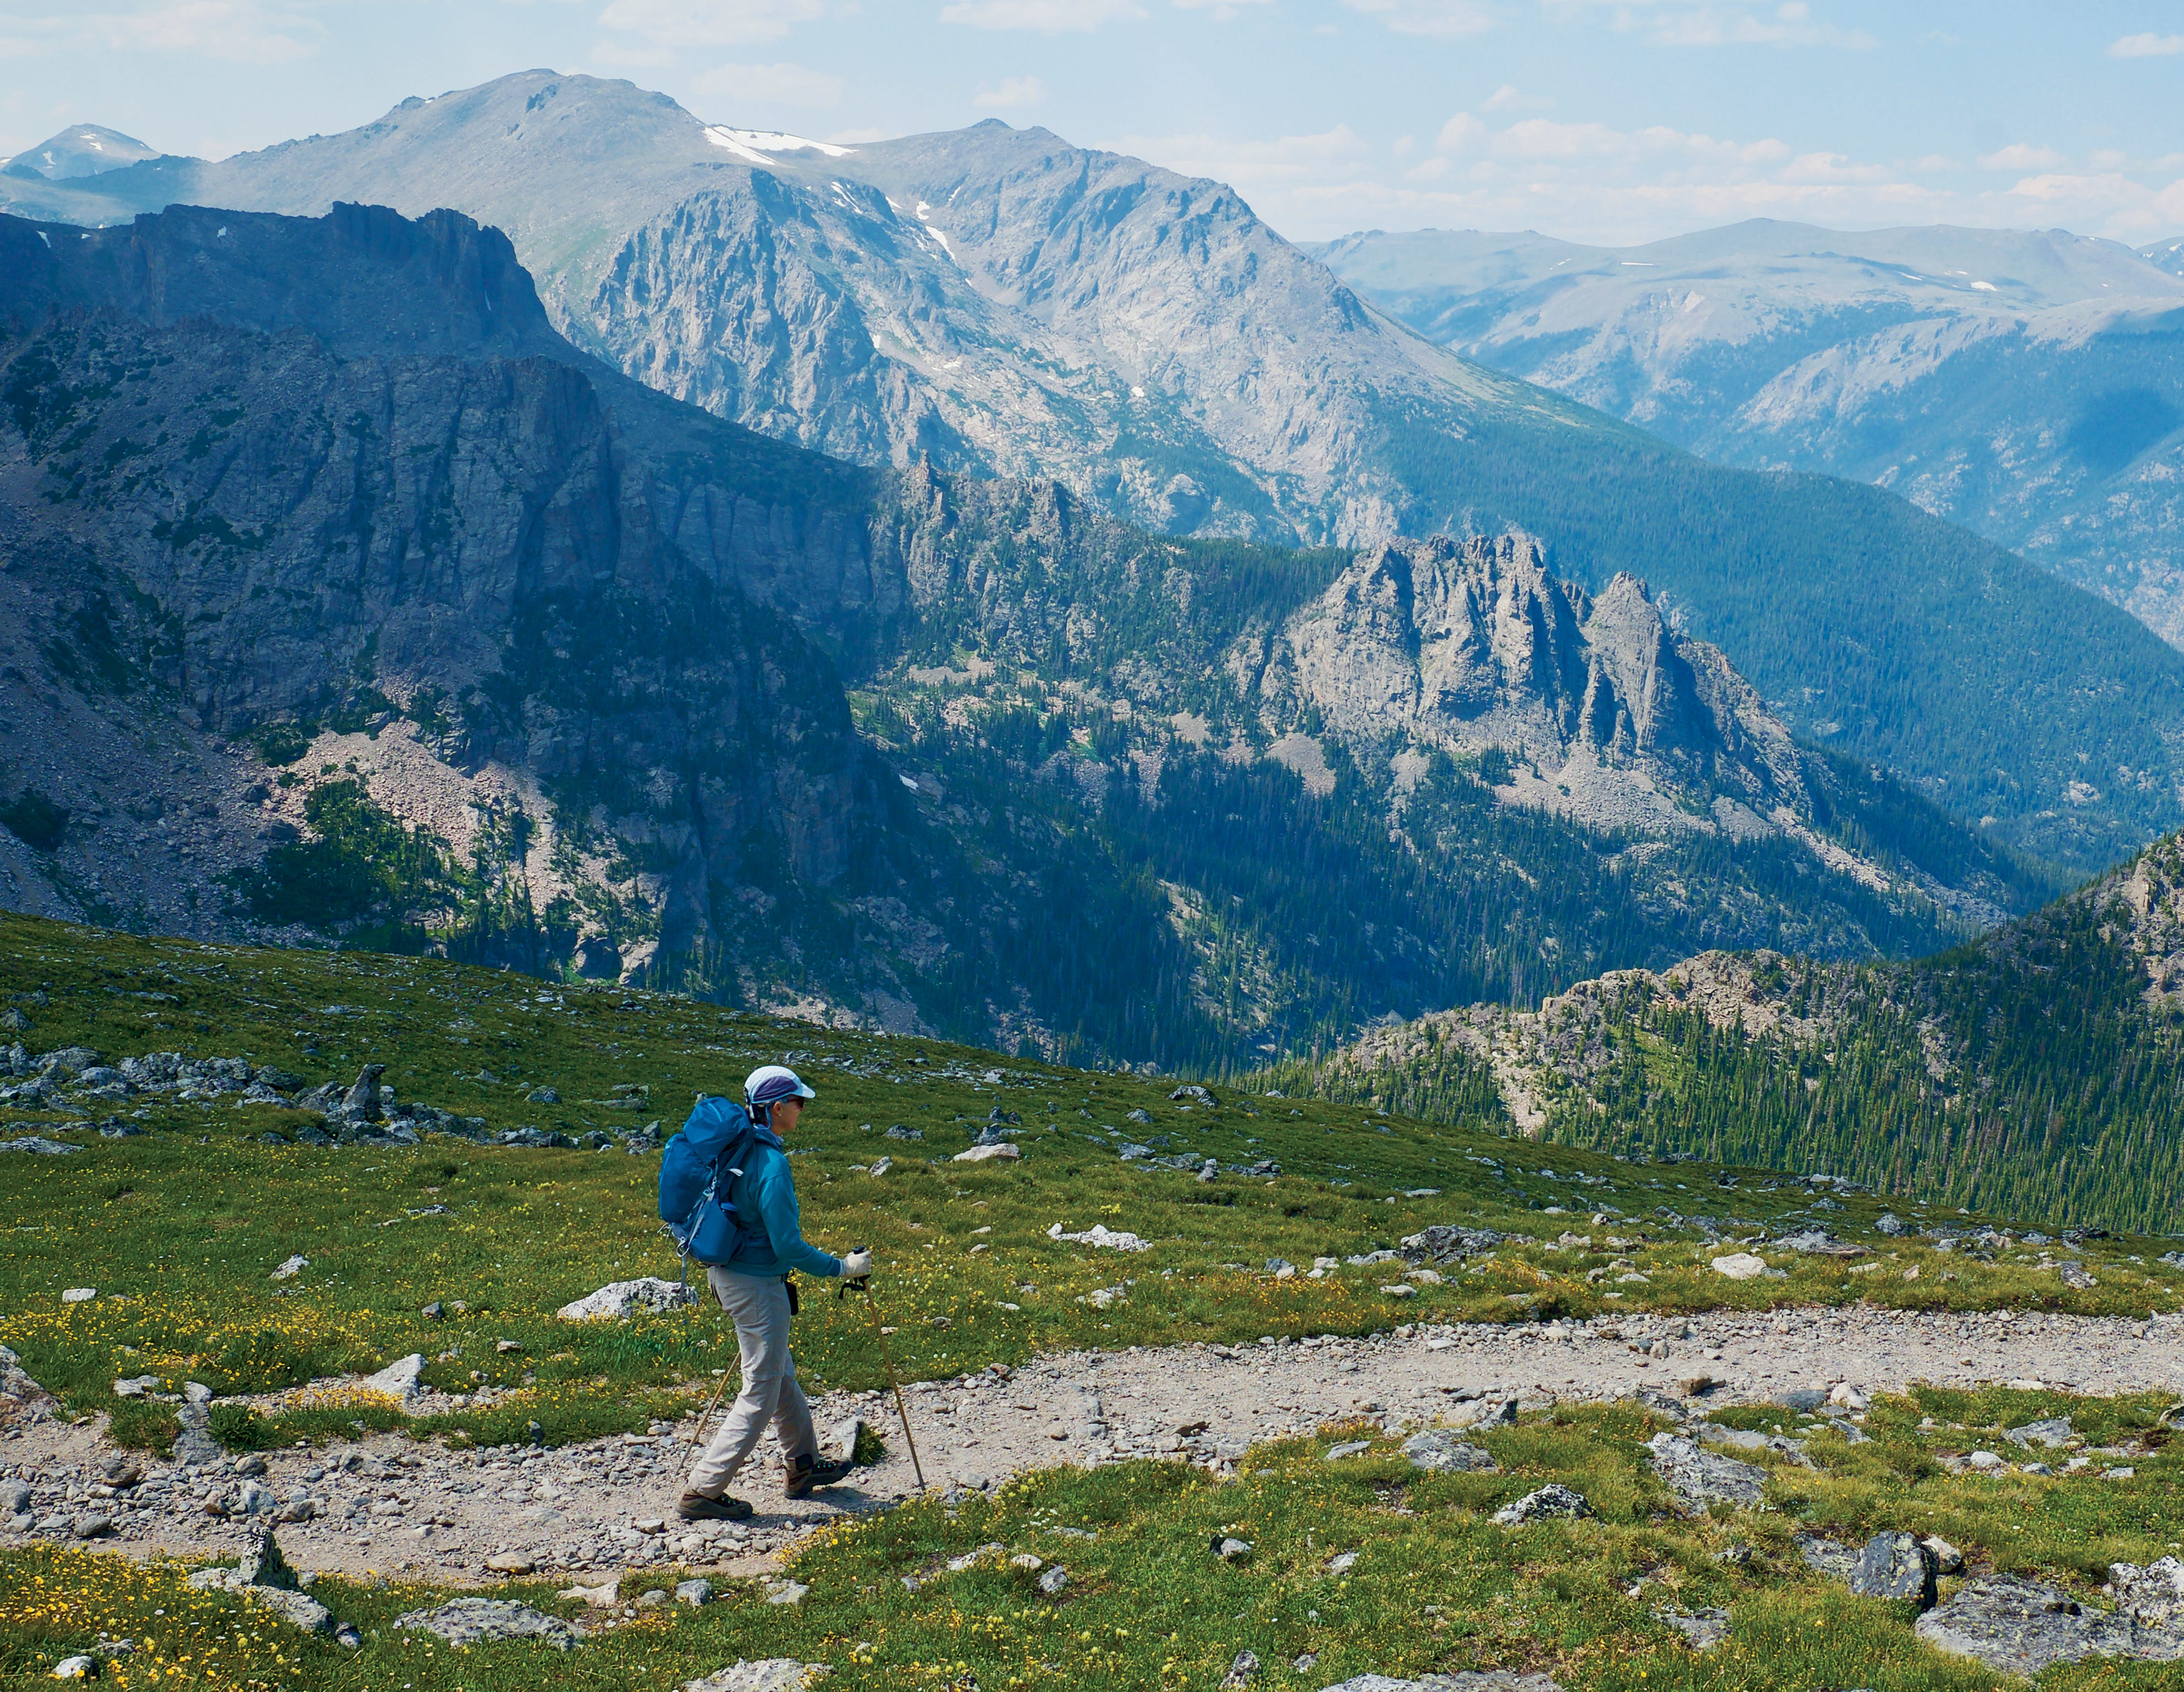 Plan your next hike at one of these mountain trails with sweeping views, physical challenges